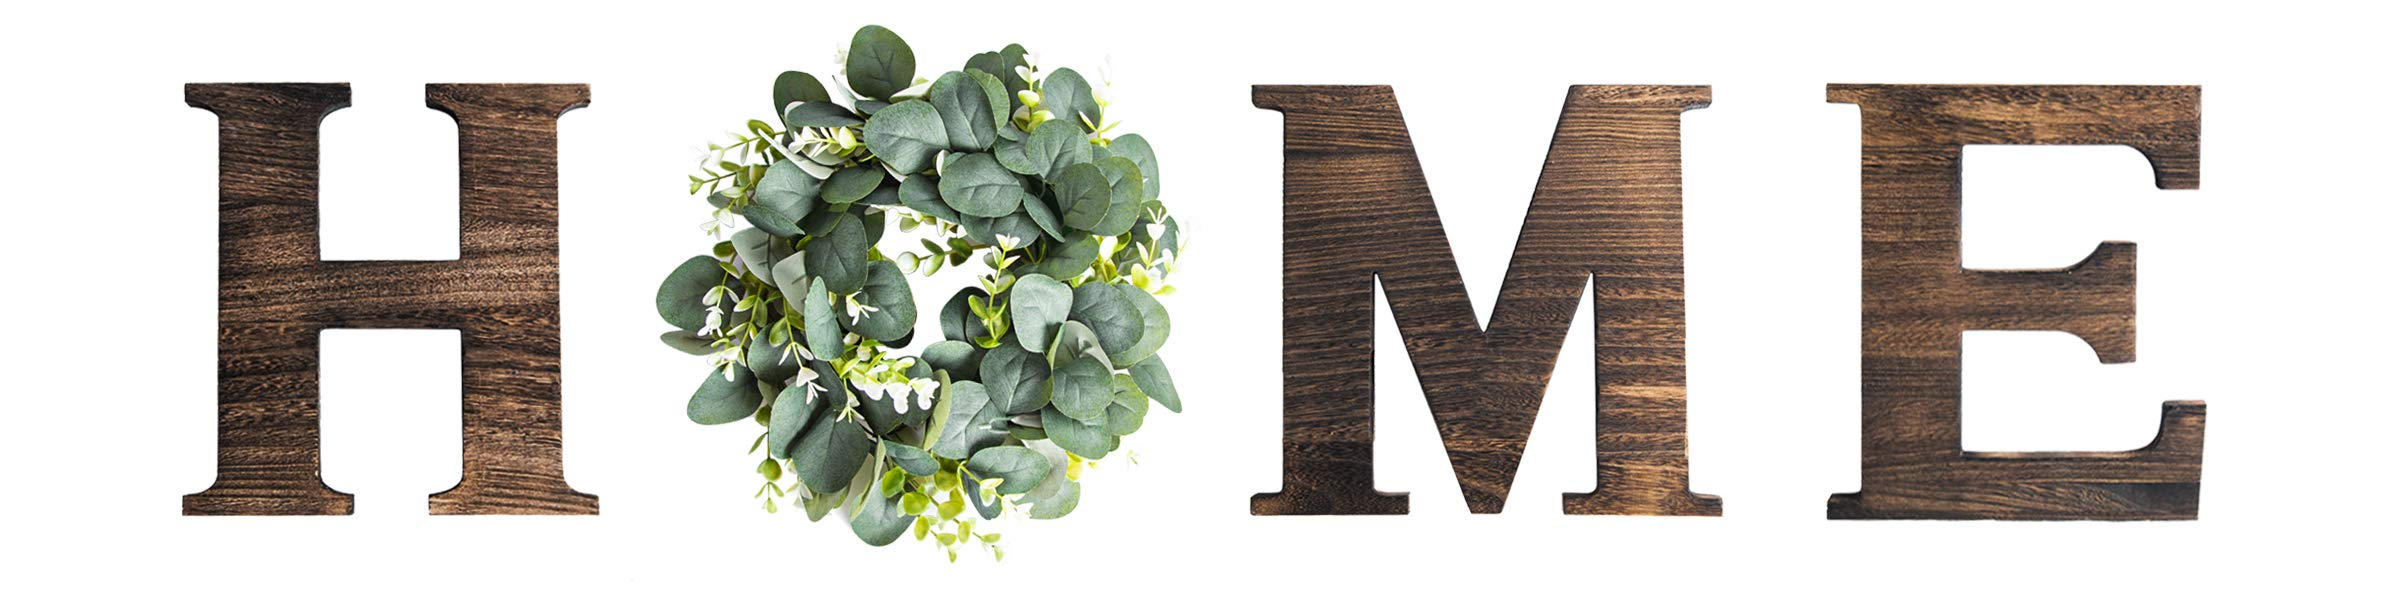 Rustic Wall Hanging Wood Home Sign Decor,O Shaped Artificial Eucalyptus Wreath Decoration, Decorative Wooden Letters H, M, E for Living Room 9.8''H x 10.4''W